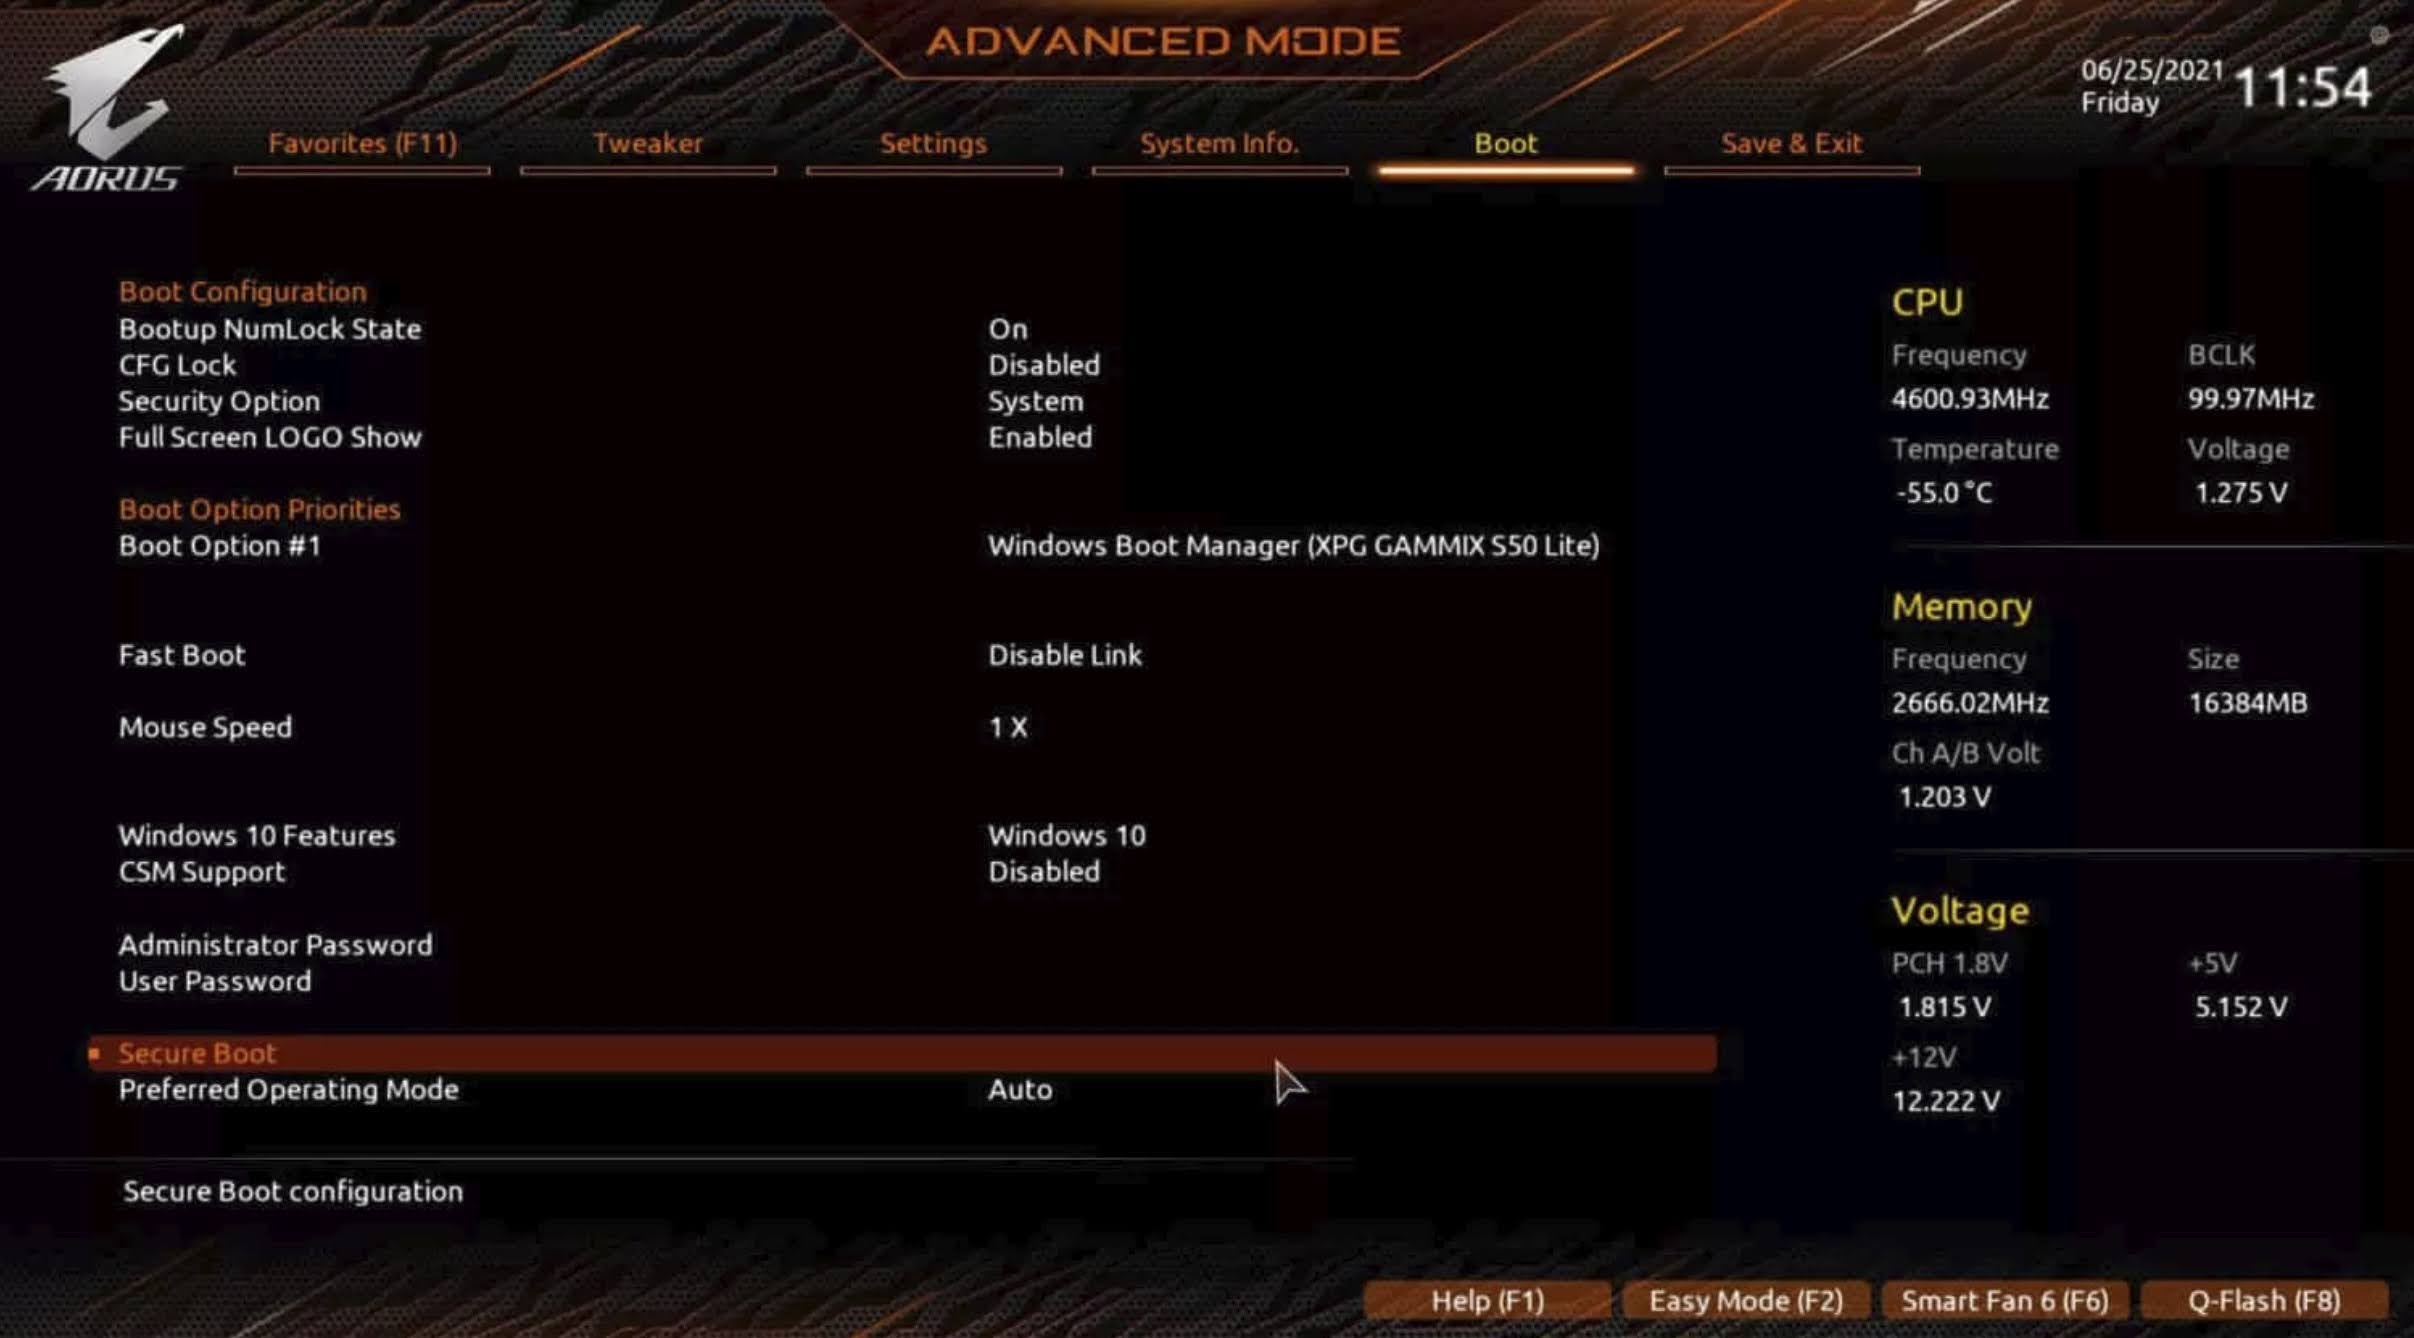 Enable TPM 2.0 for GIGABYTE motherboard using AORUS: Navigate to the Boot tab and double-click on the Secure Boot option.